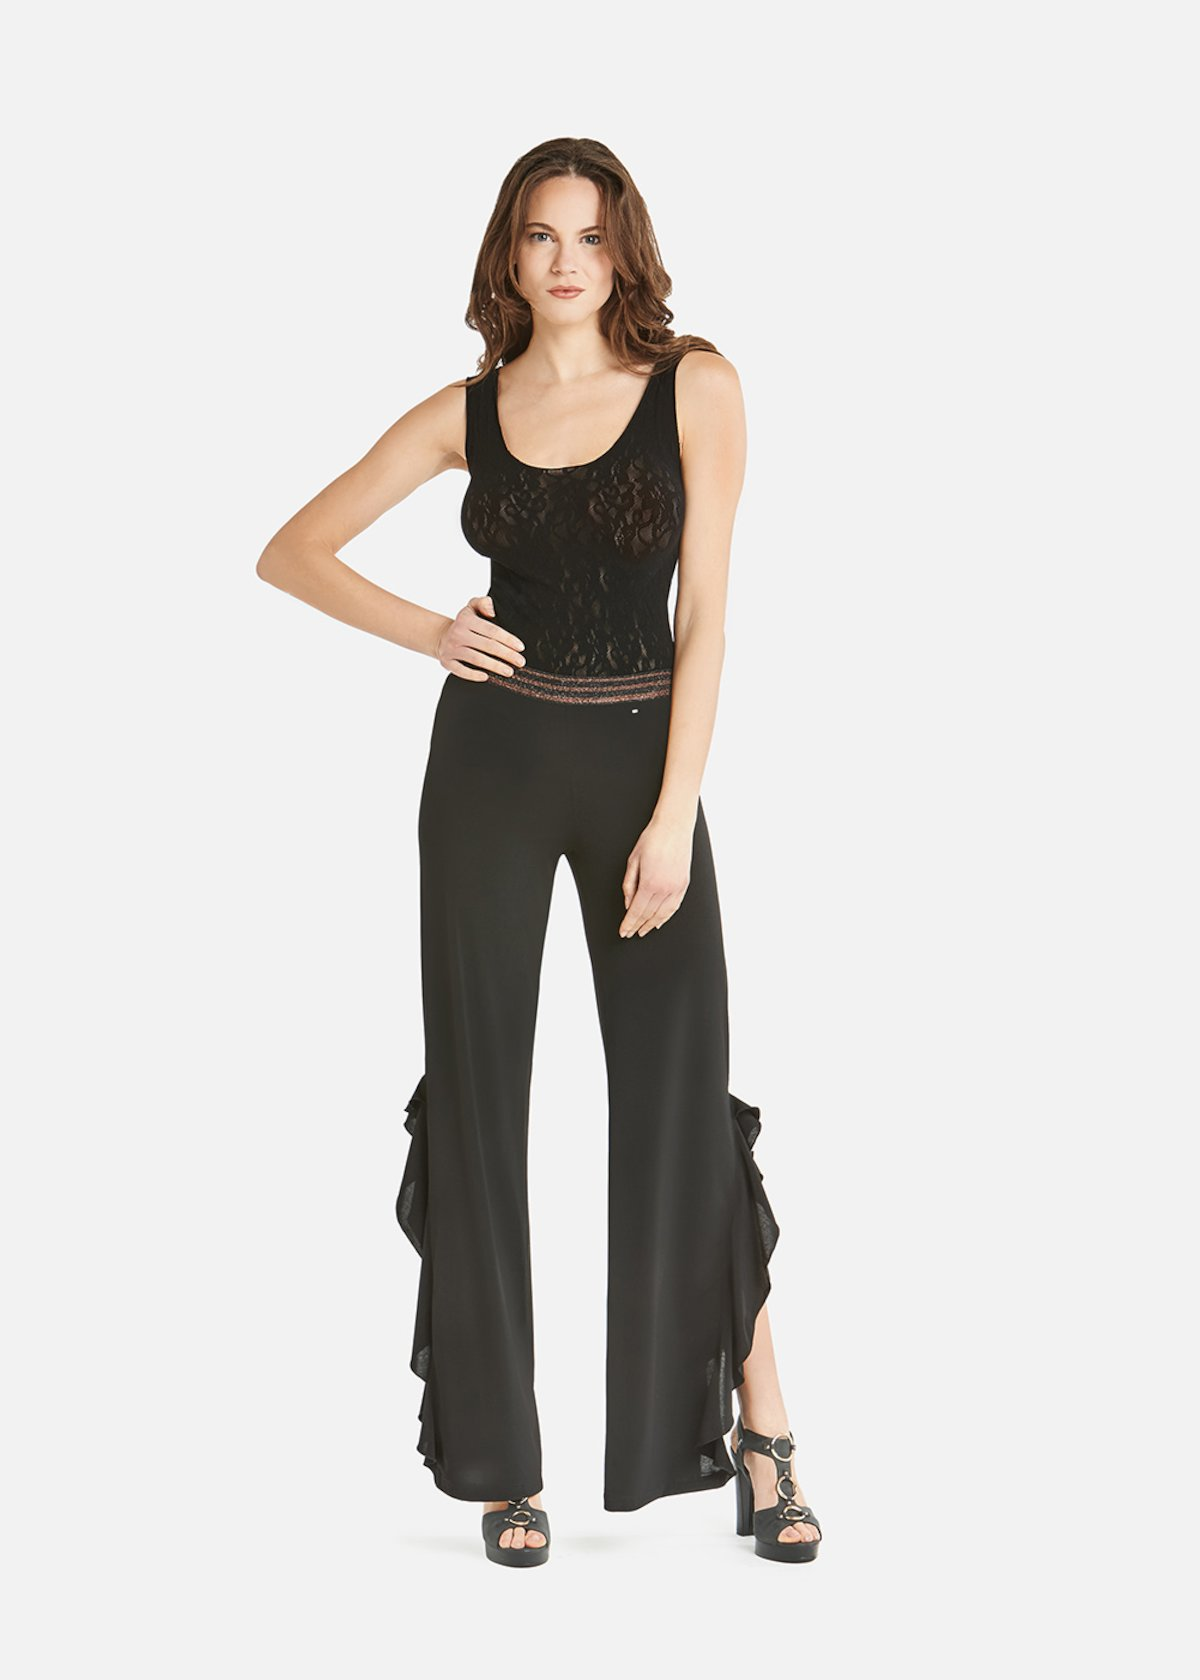 Peleo trousers with wide leg and side slits with rouches